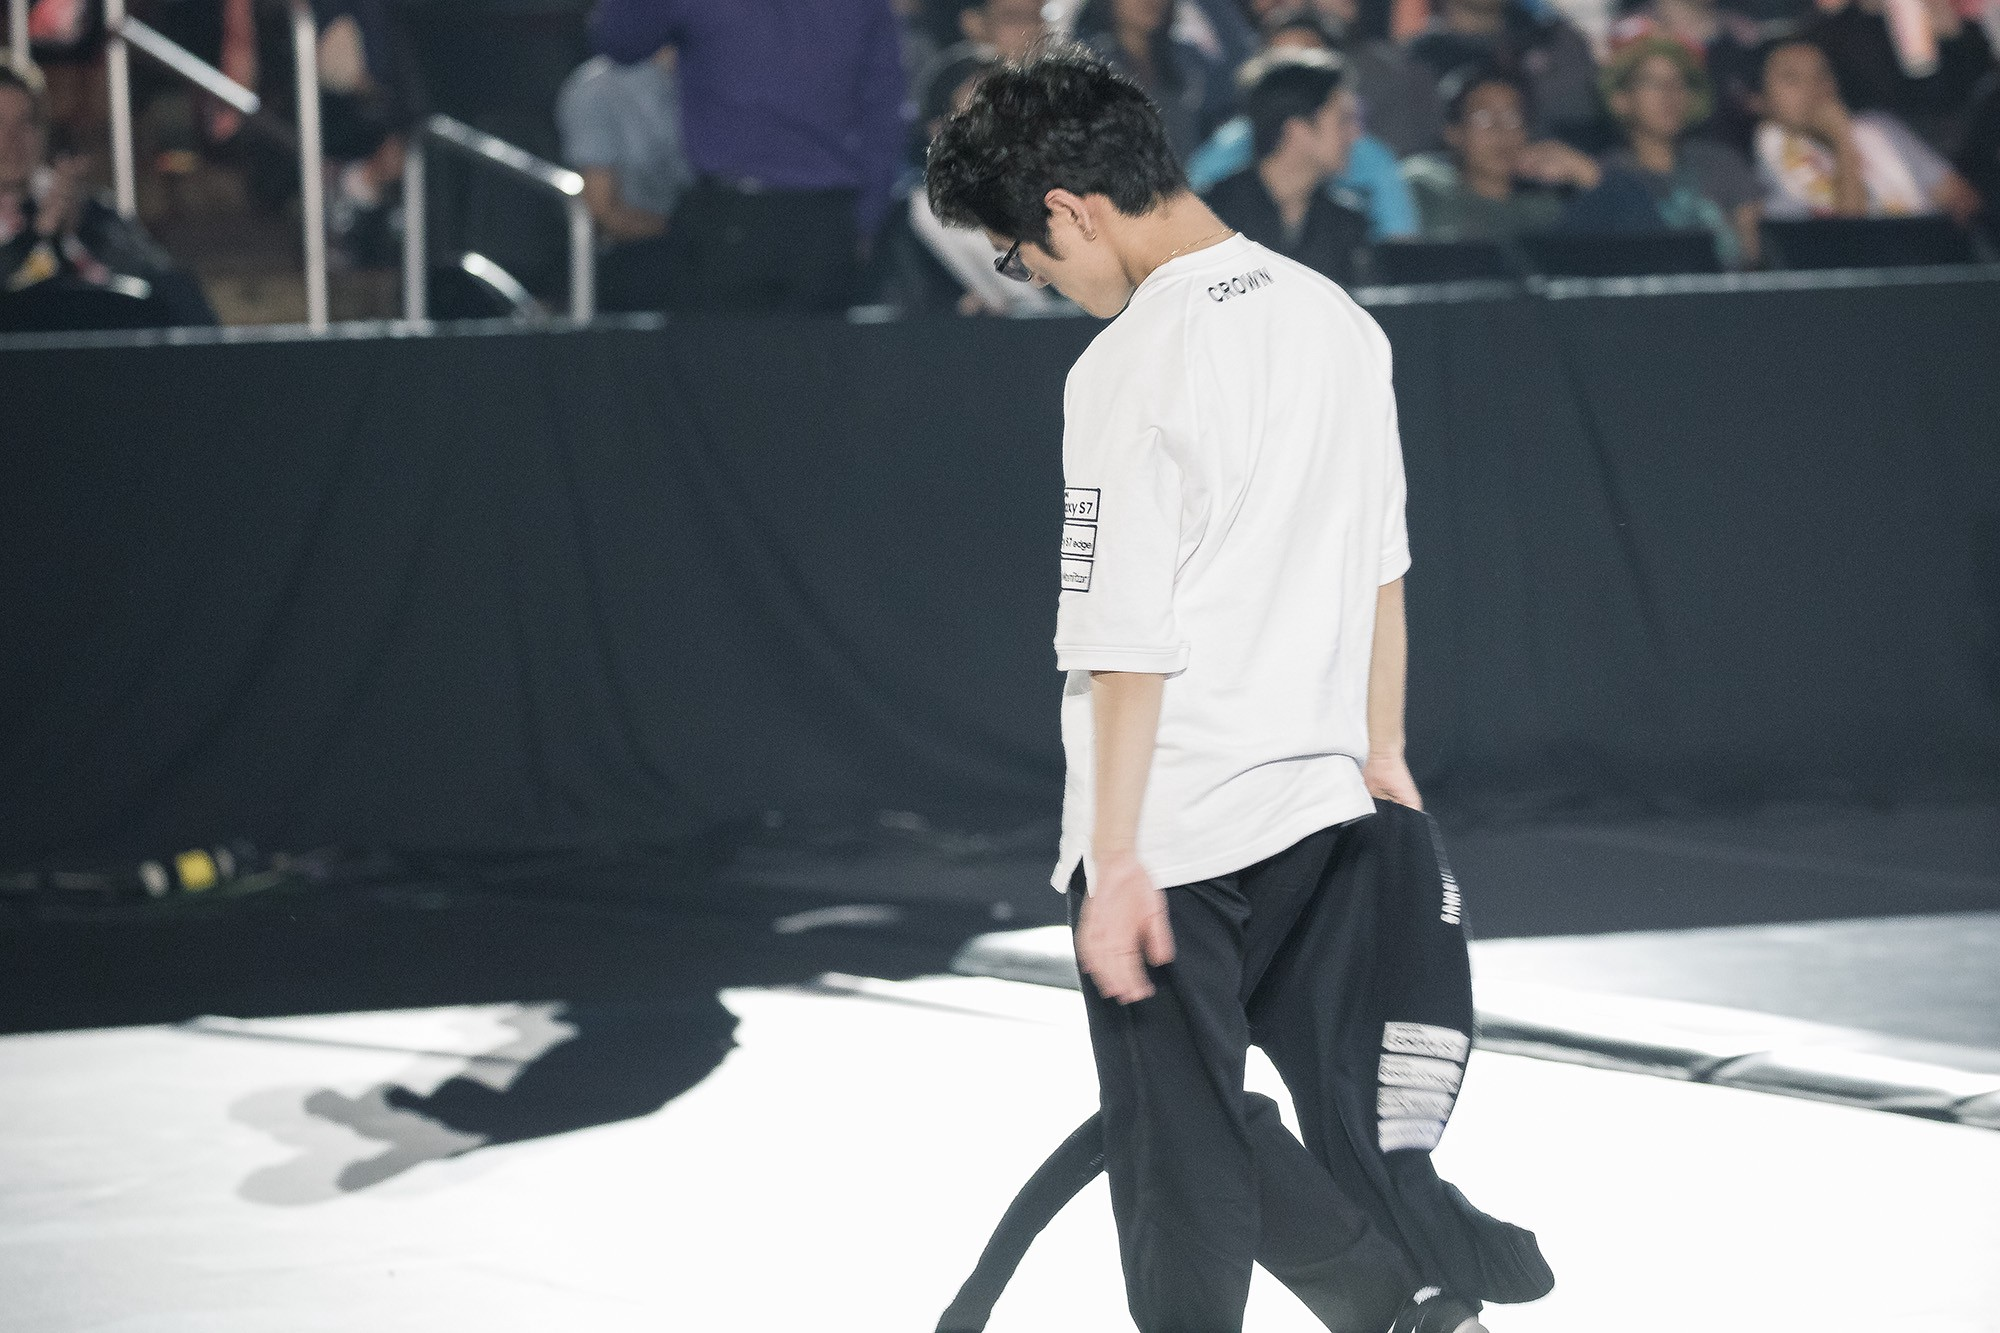 Reflections of an LCK fan. When finals roll around and that last… | by SJT-gzeebee | Medium